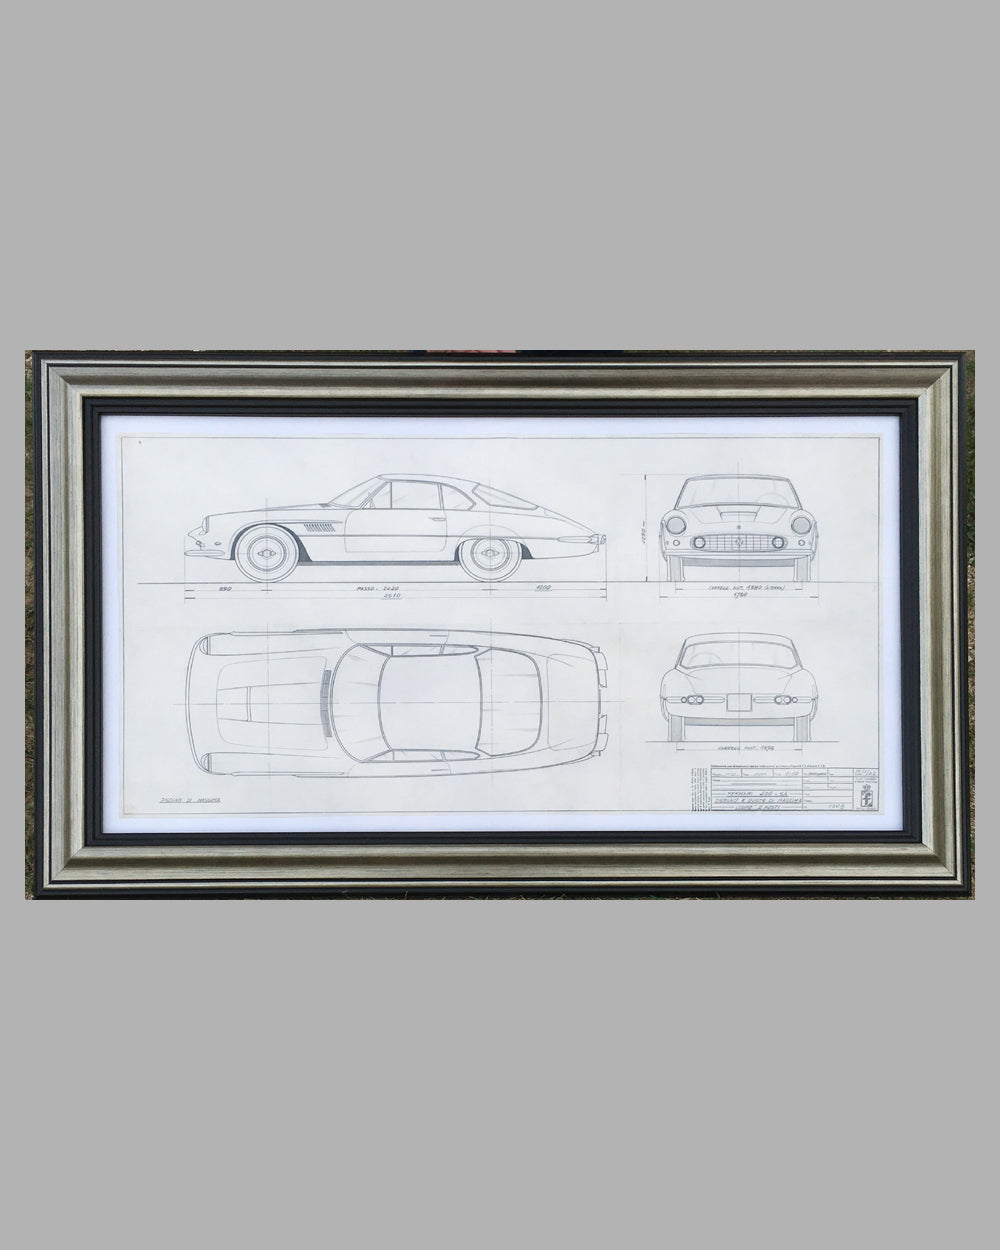 Ferrari 400 SA original Pininfarina studio drawing